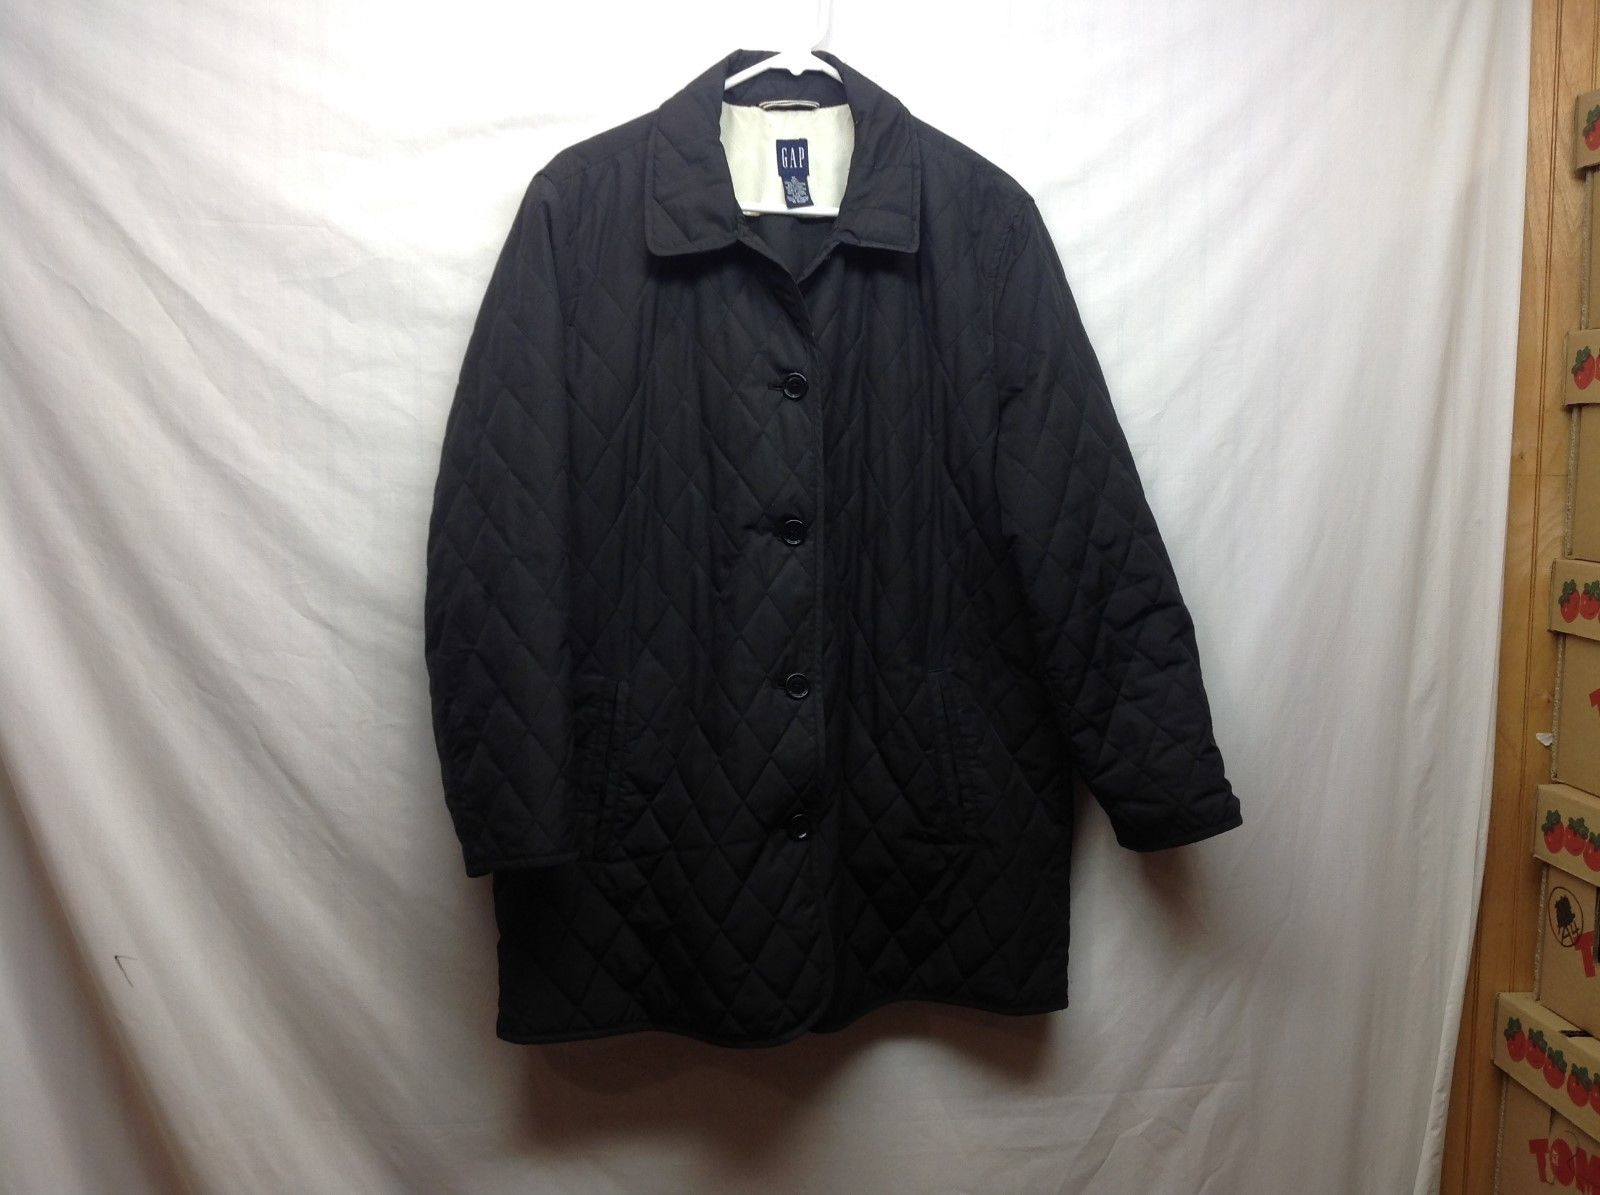 Ladies Black Button Up Jacket by GAP sz XL